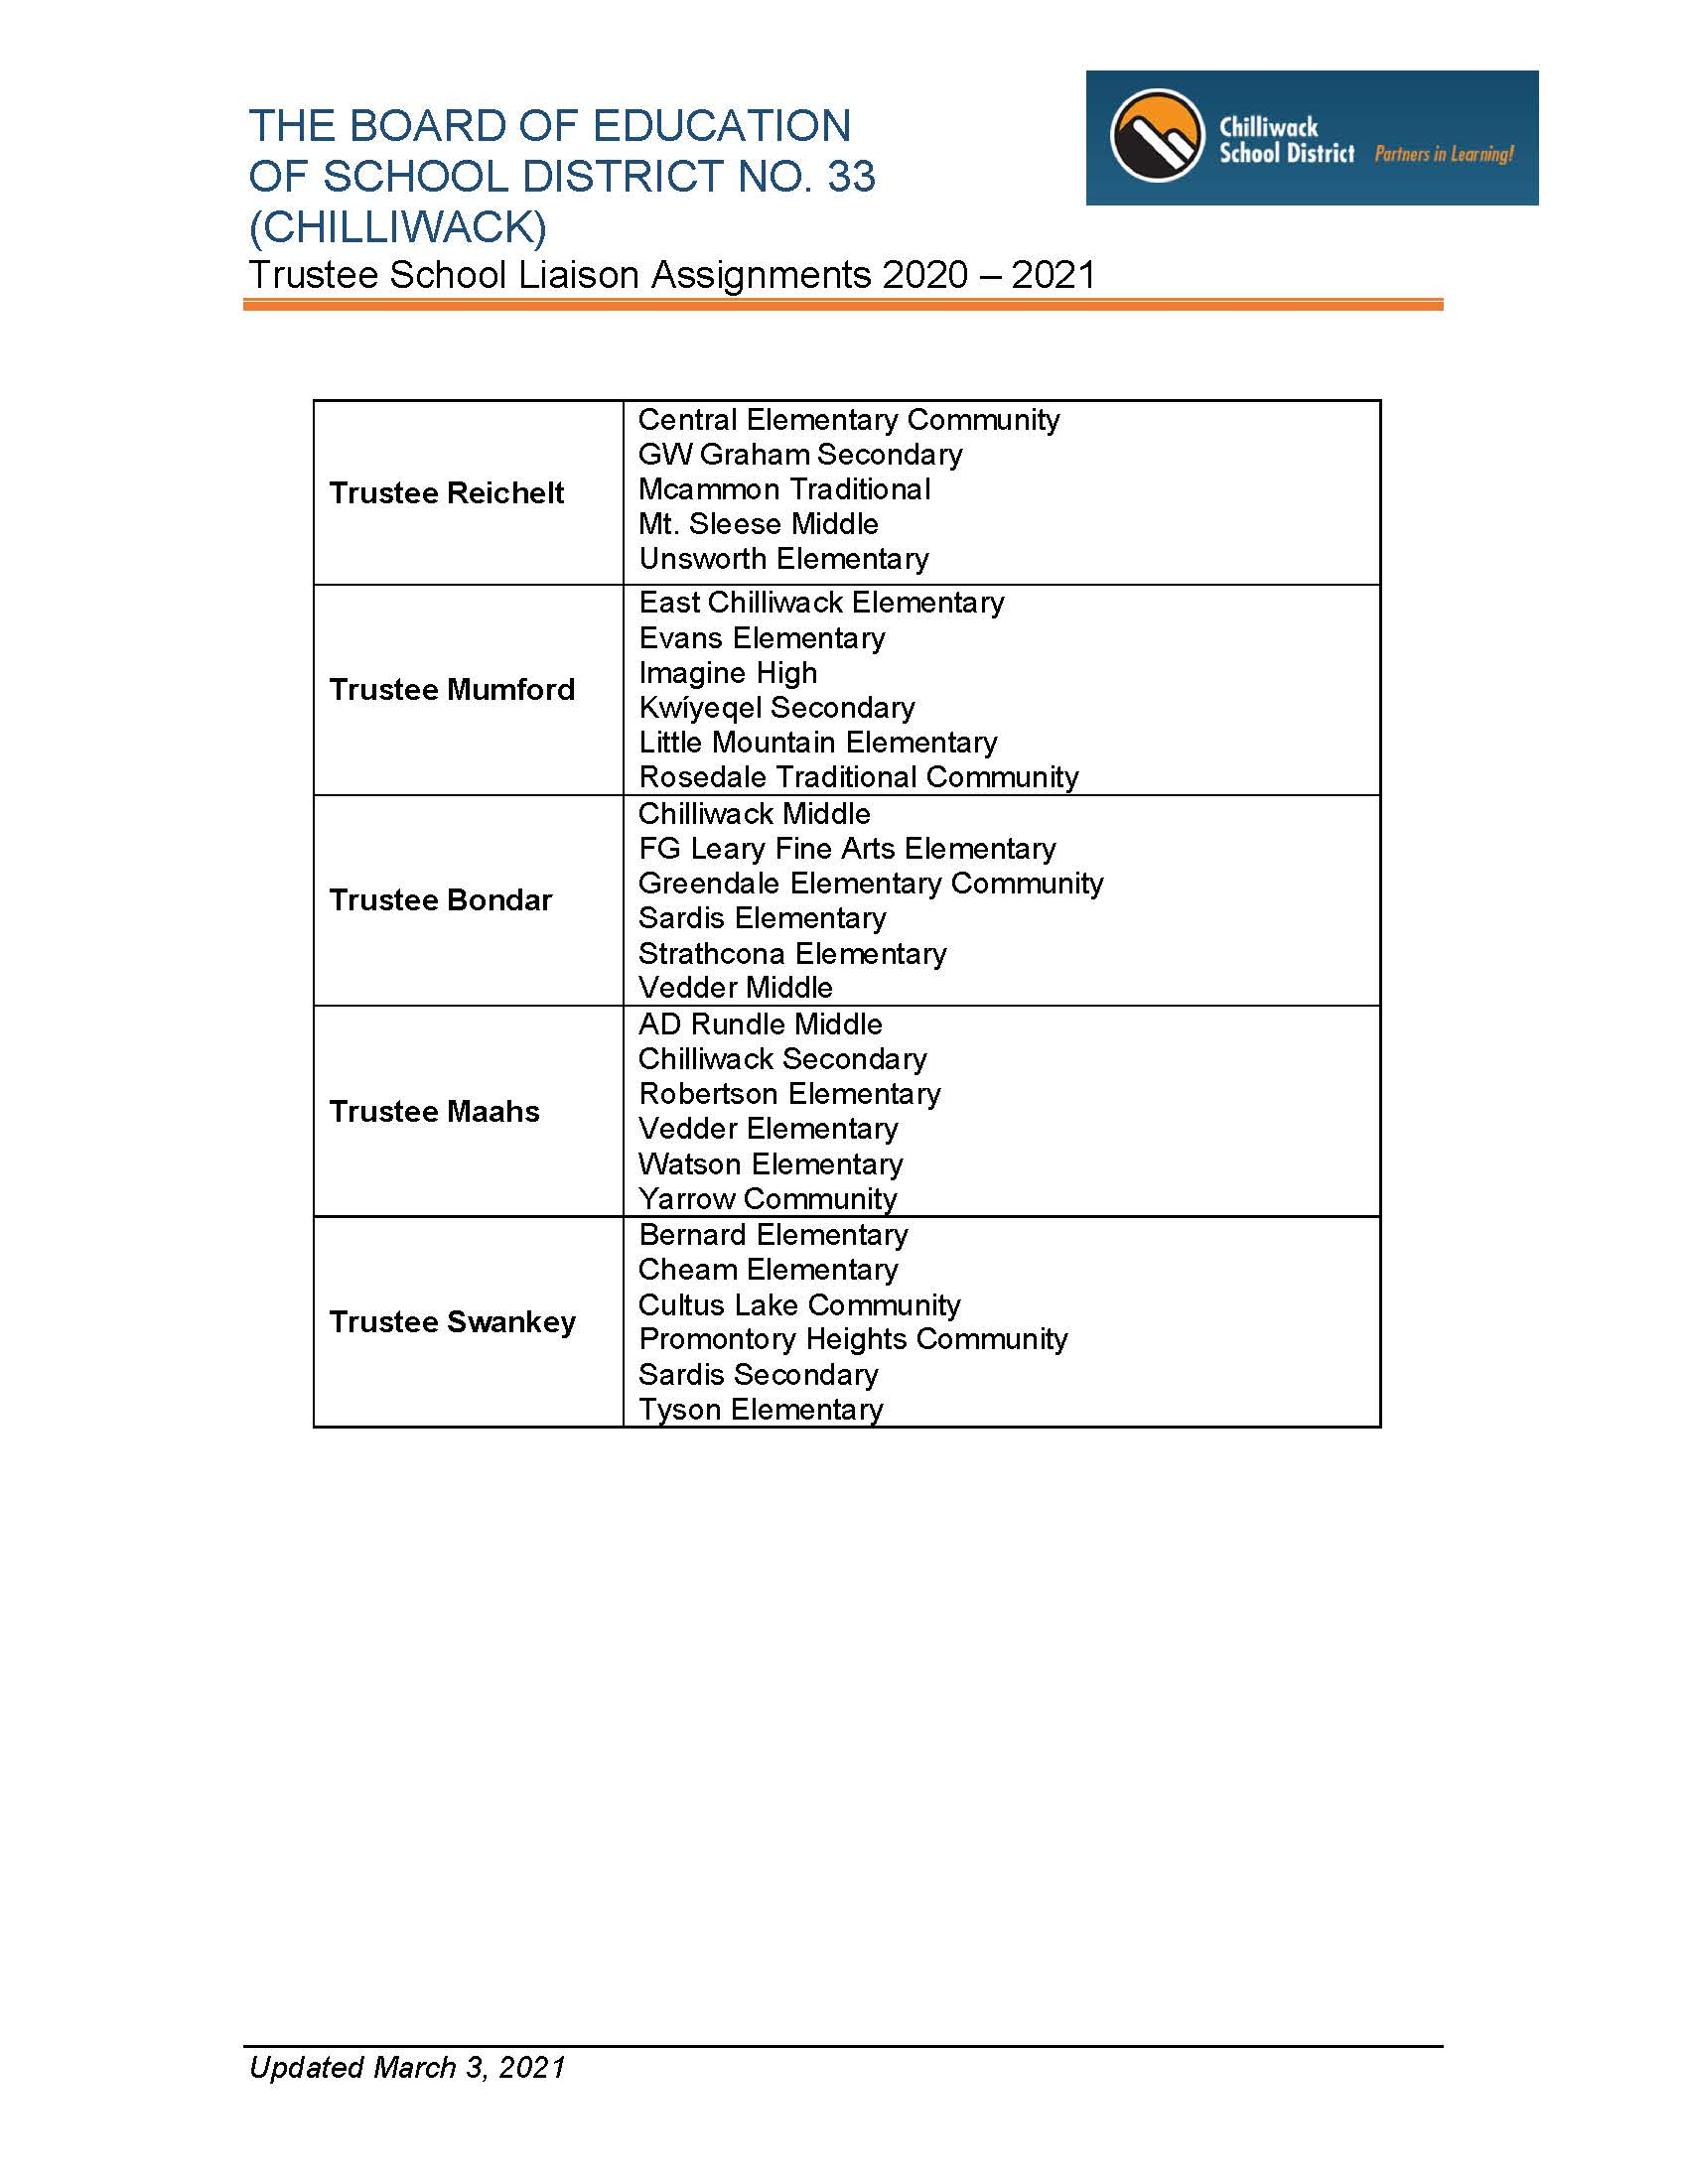 School Liaison Assignments